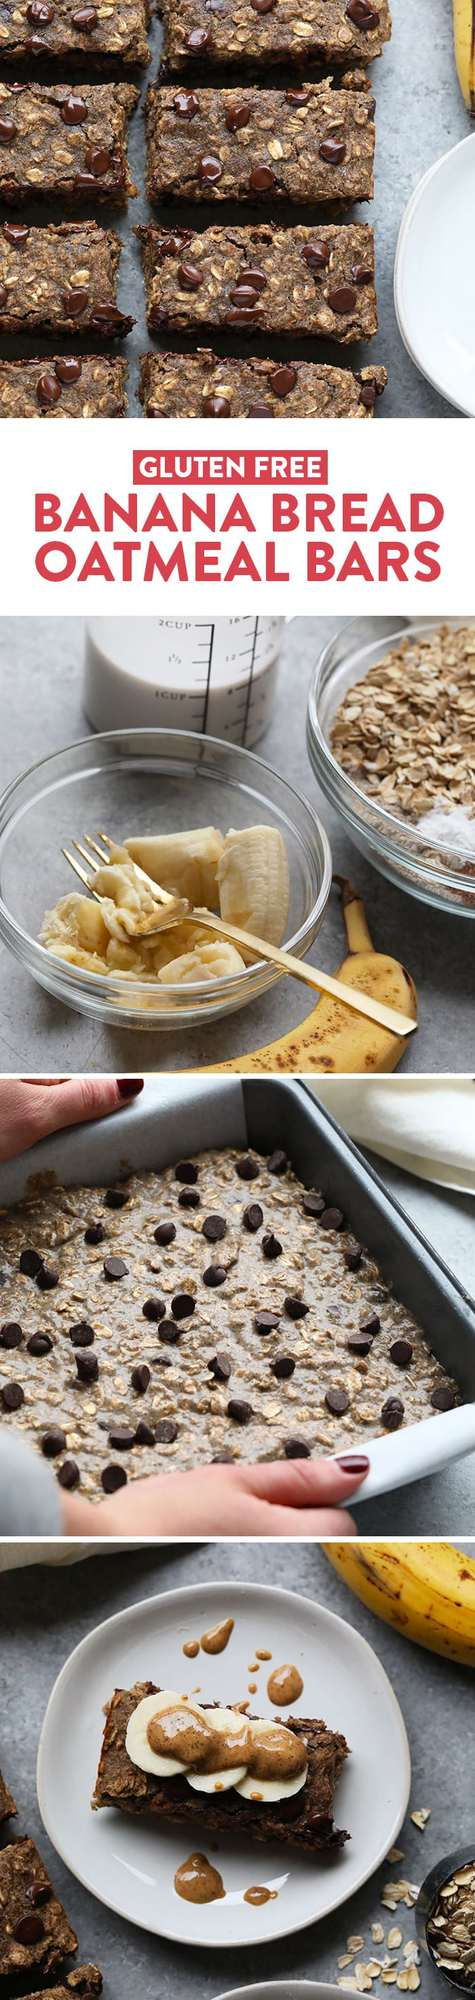 It's time to kick the refined grains and sugar and make these delicious Gluten Free Banana Bread Oatmeal Bars! They're made with a mixture of ground oat flour and buckwheat flour and sweetened with banana and honey.